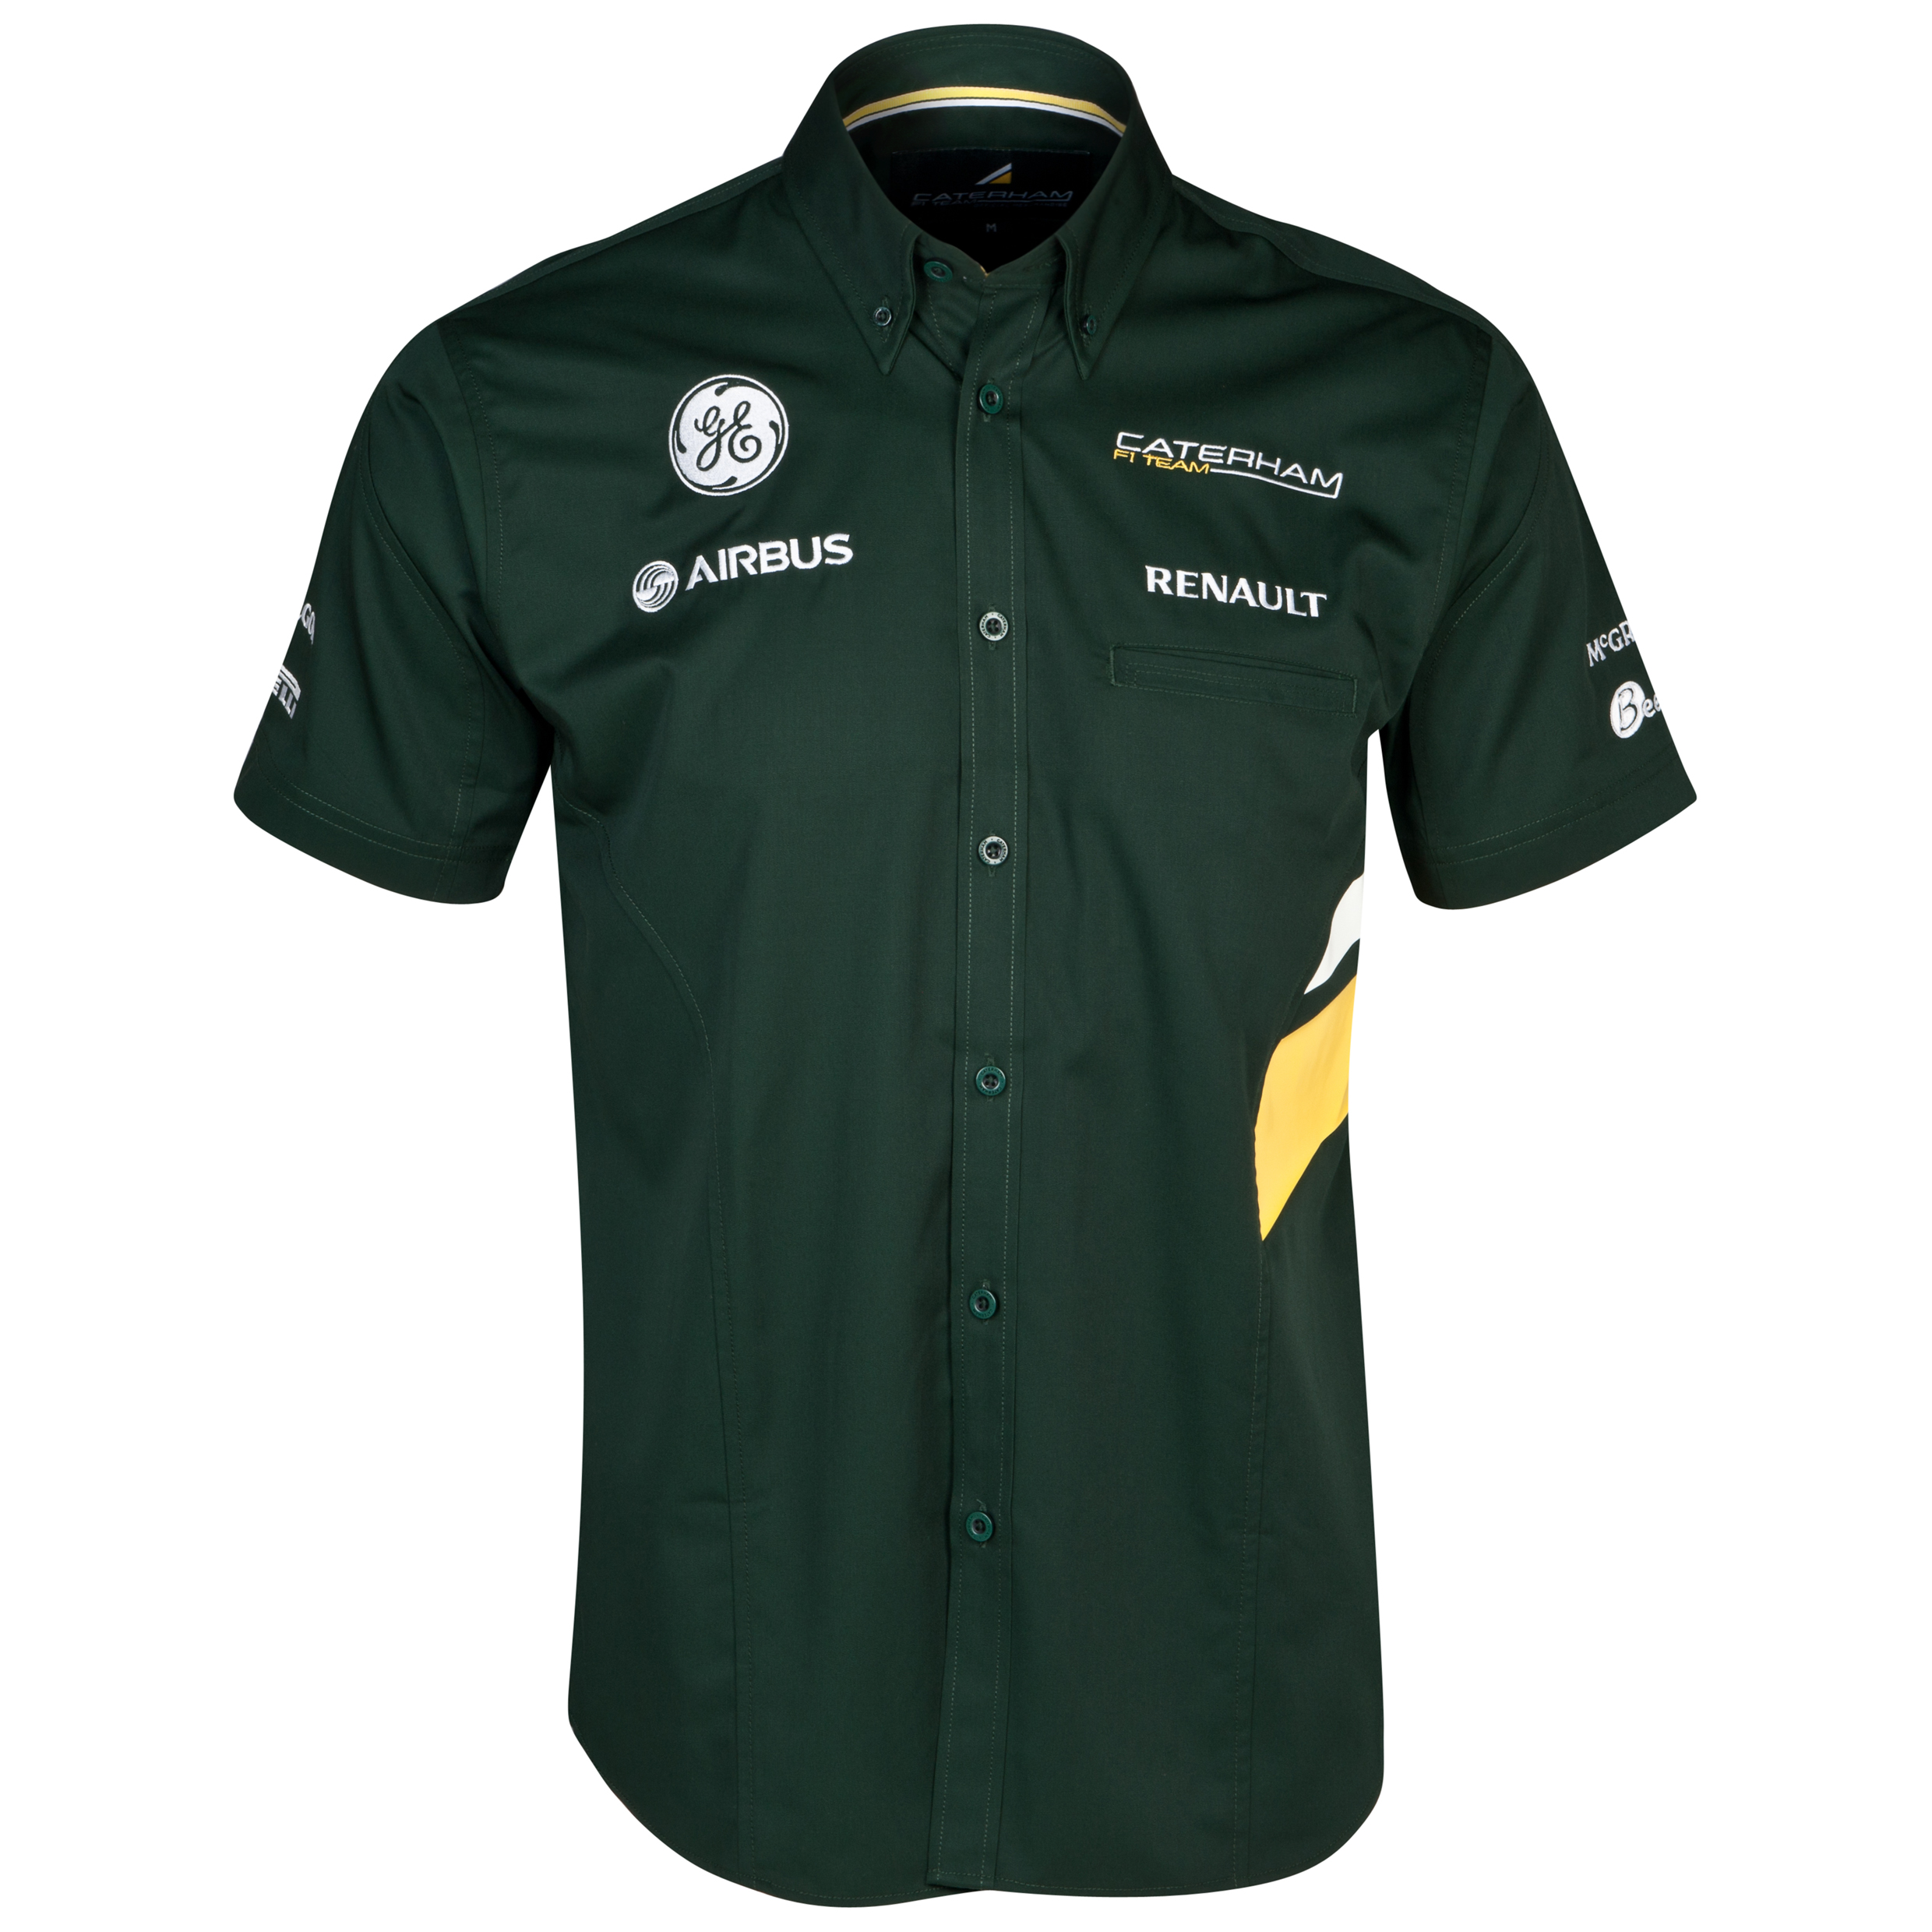 Caterham F1 Team Replica Race Shirt